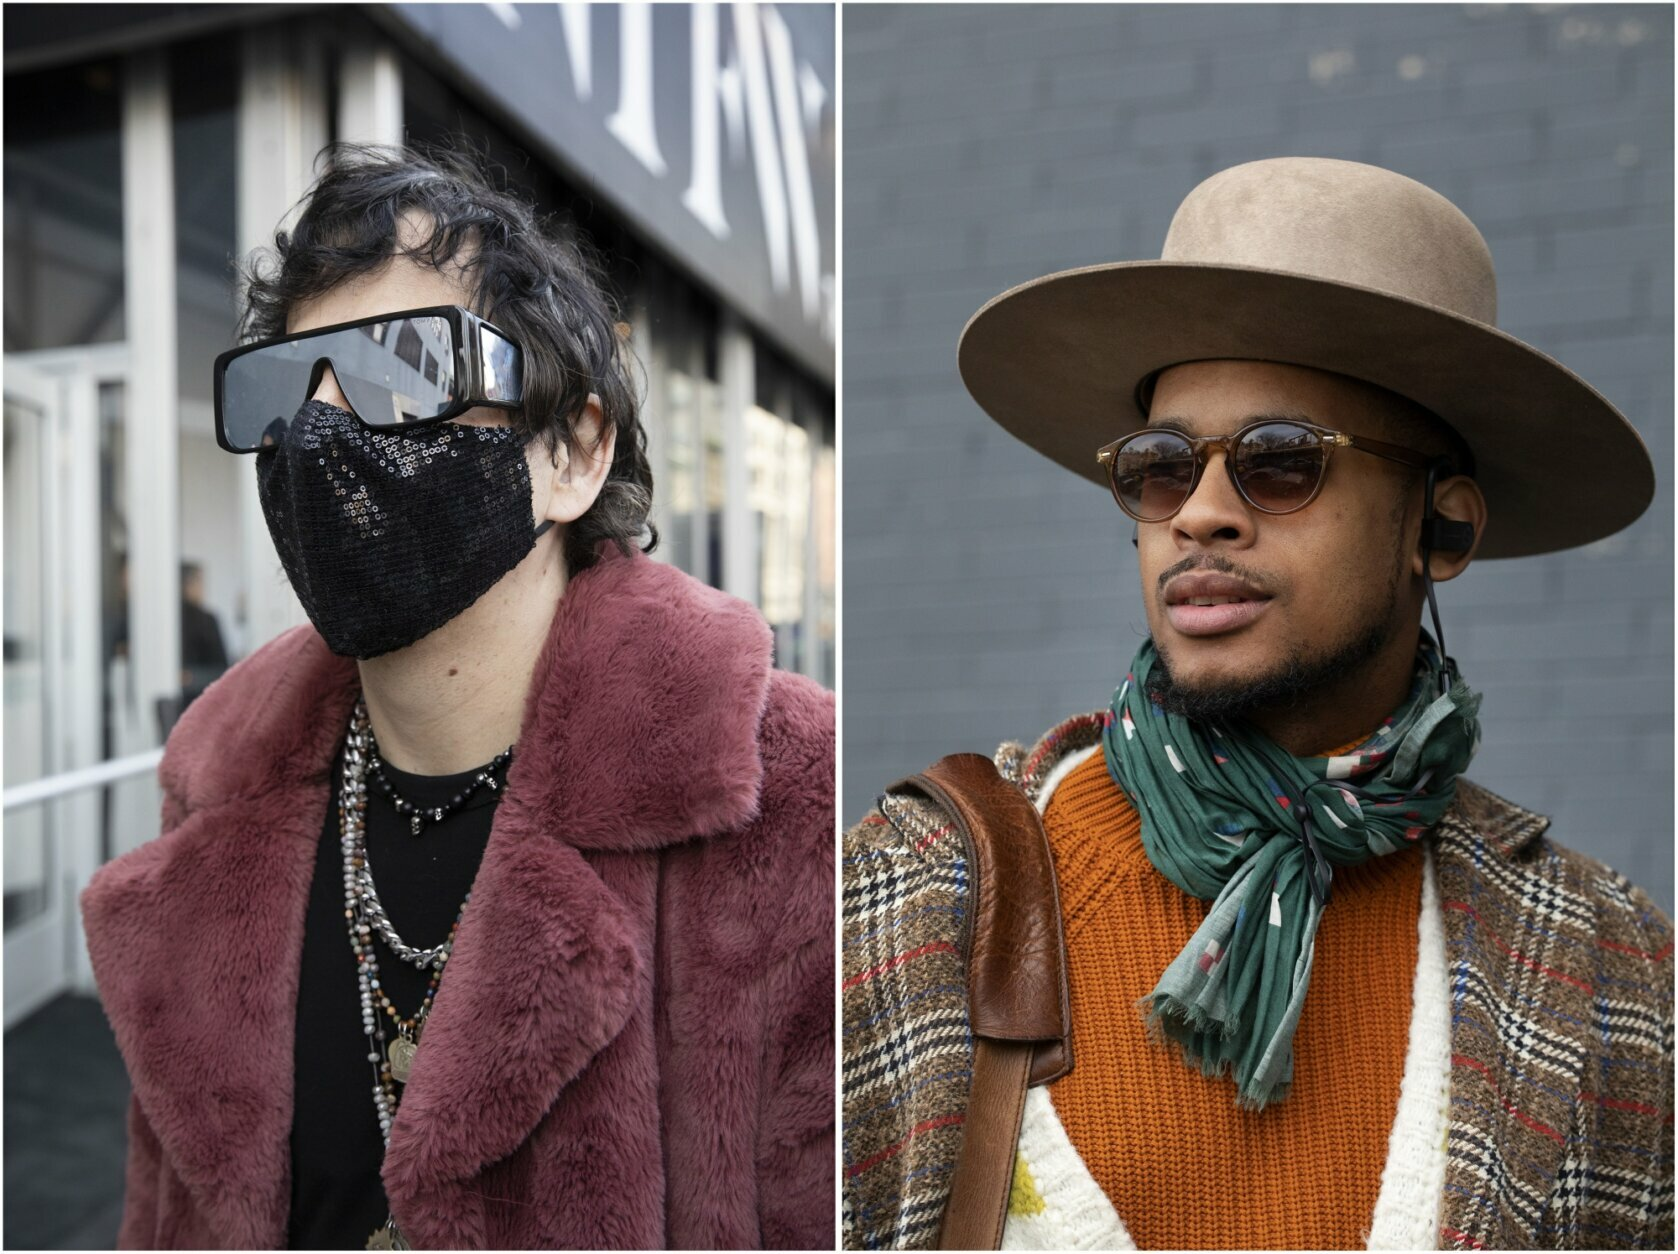 Pablo Starr, left, the owner Fashion Week Online and Karston Tannis pose for photos before attending a show during Fashion Week, Wednesday, Feb. 12, 2020, in New York. (AP Photo/Mark Lennihan)